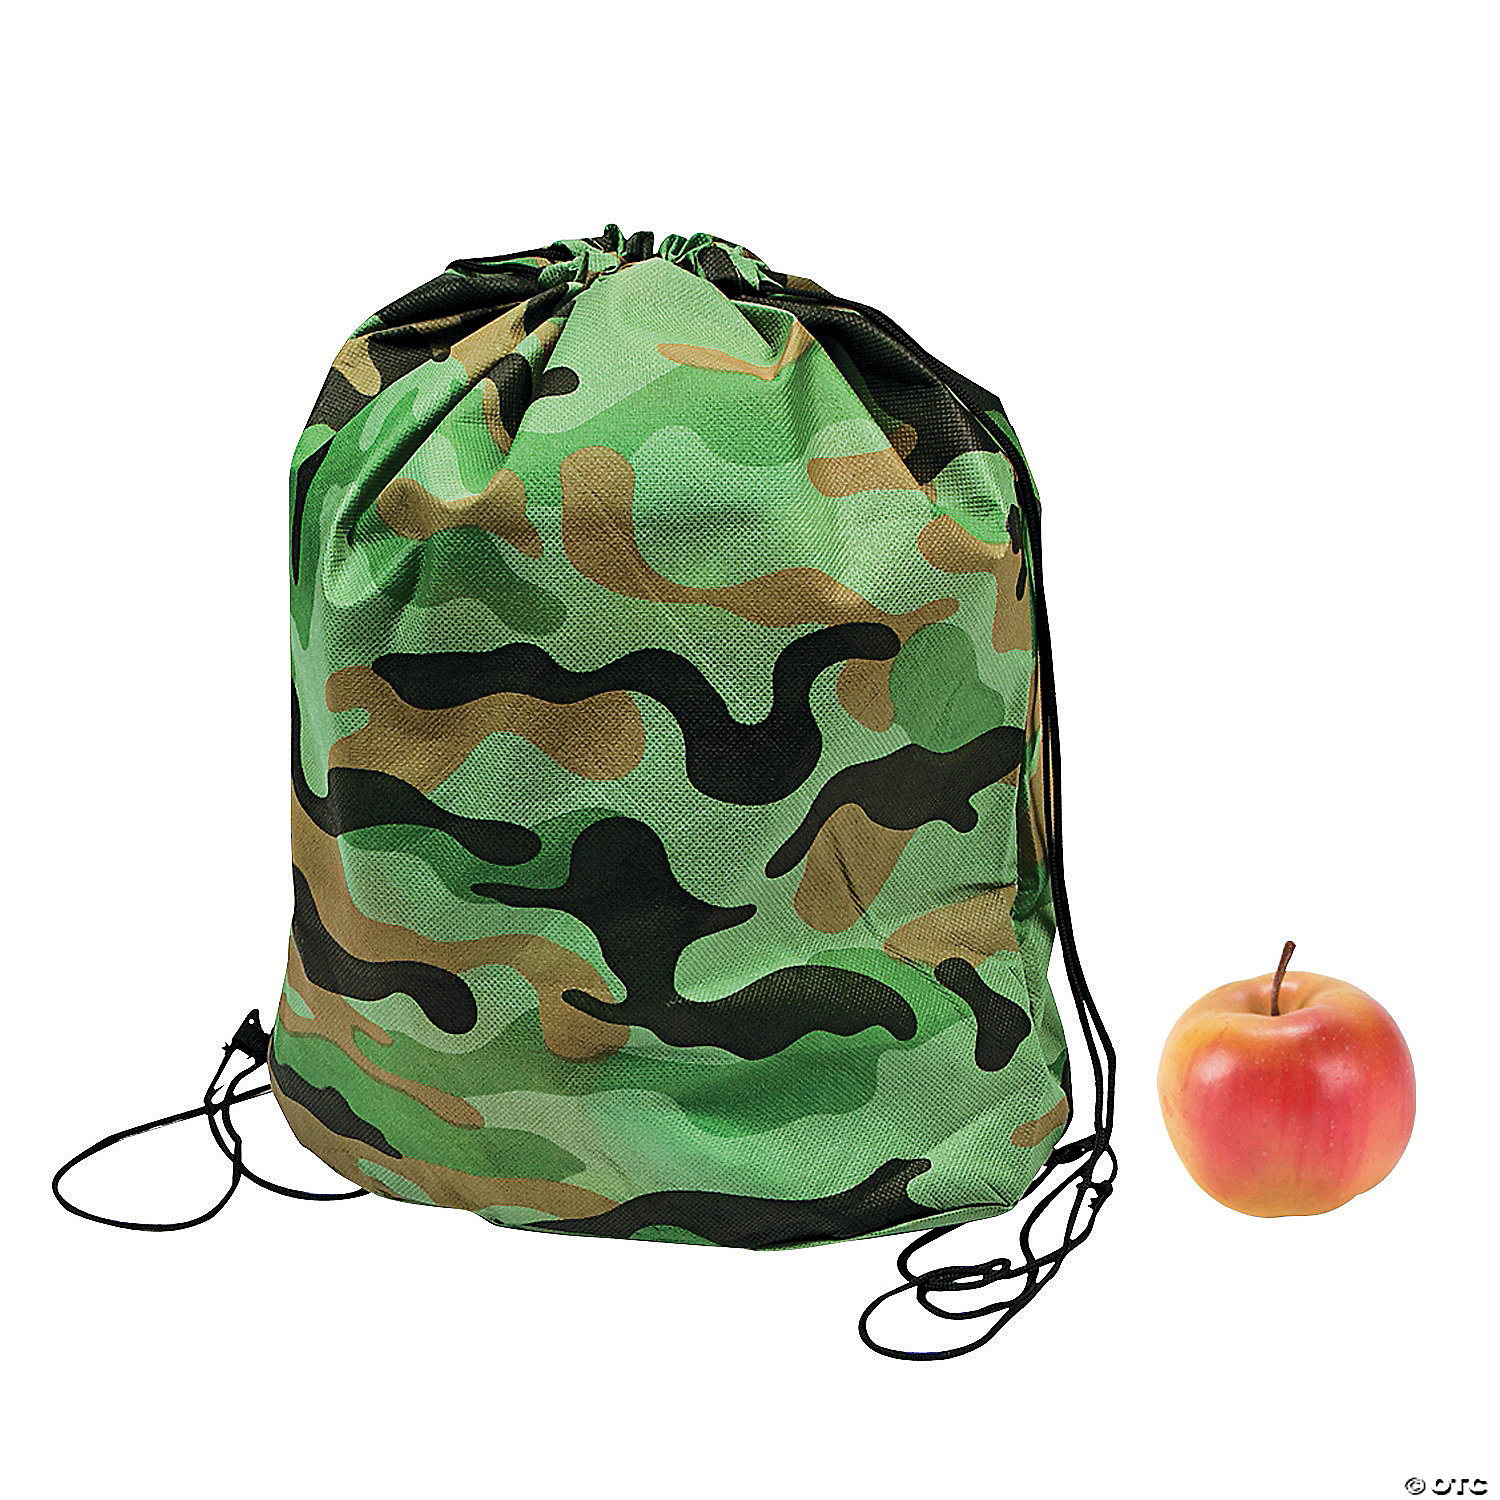 Medium Green Camouflage Drawstring Bags